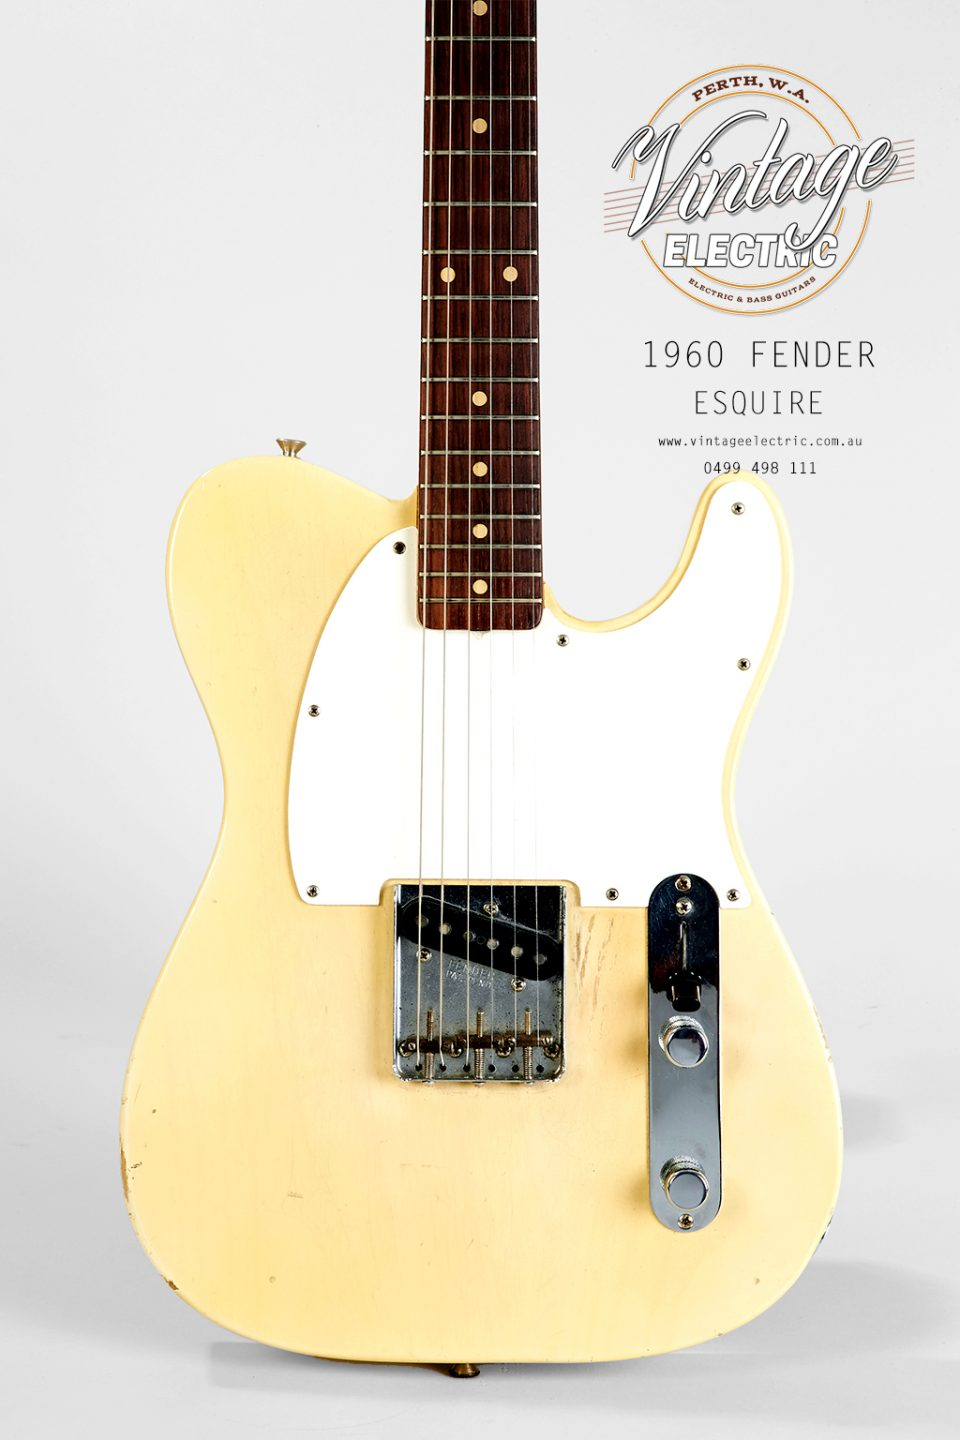 1960 Fender Esquire Blonde Body